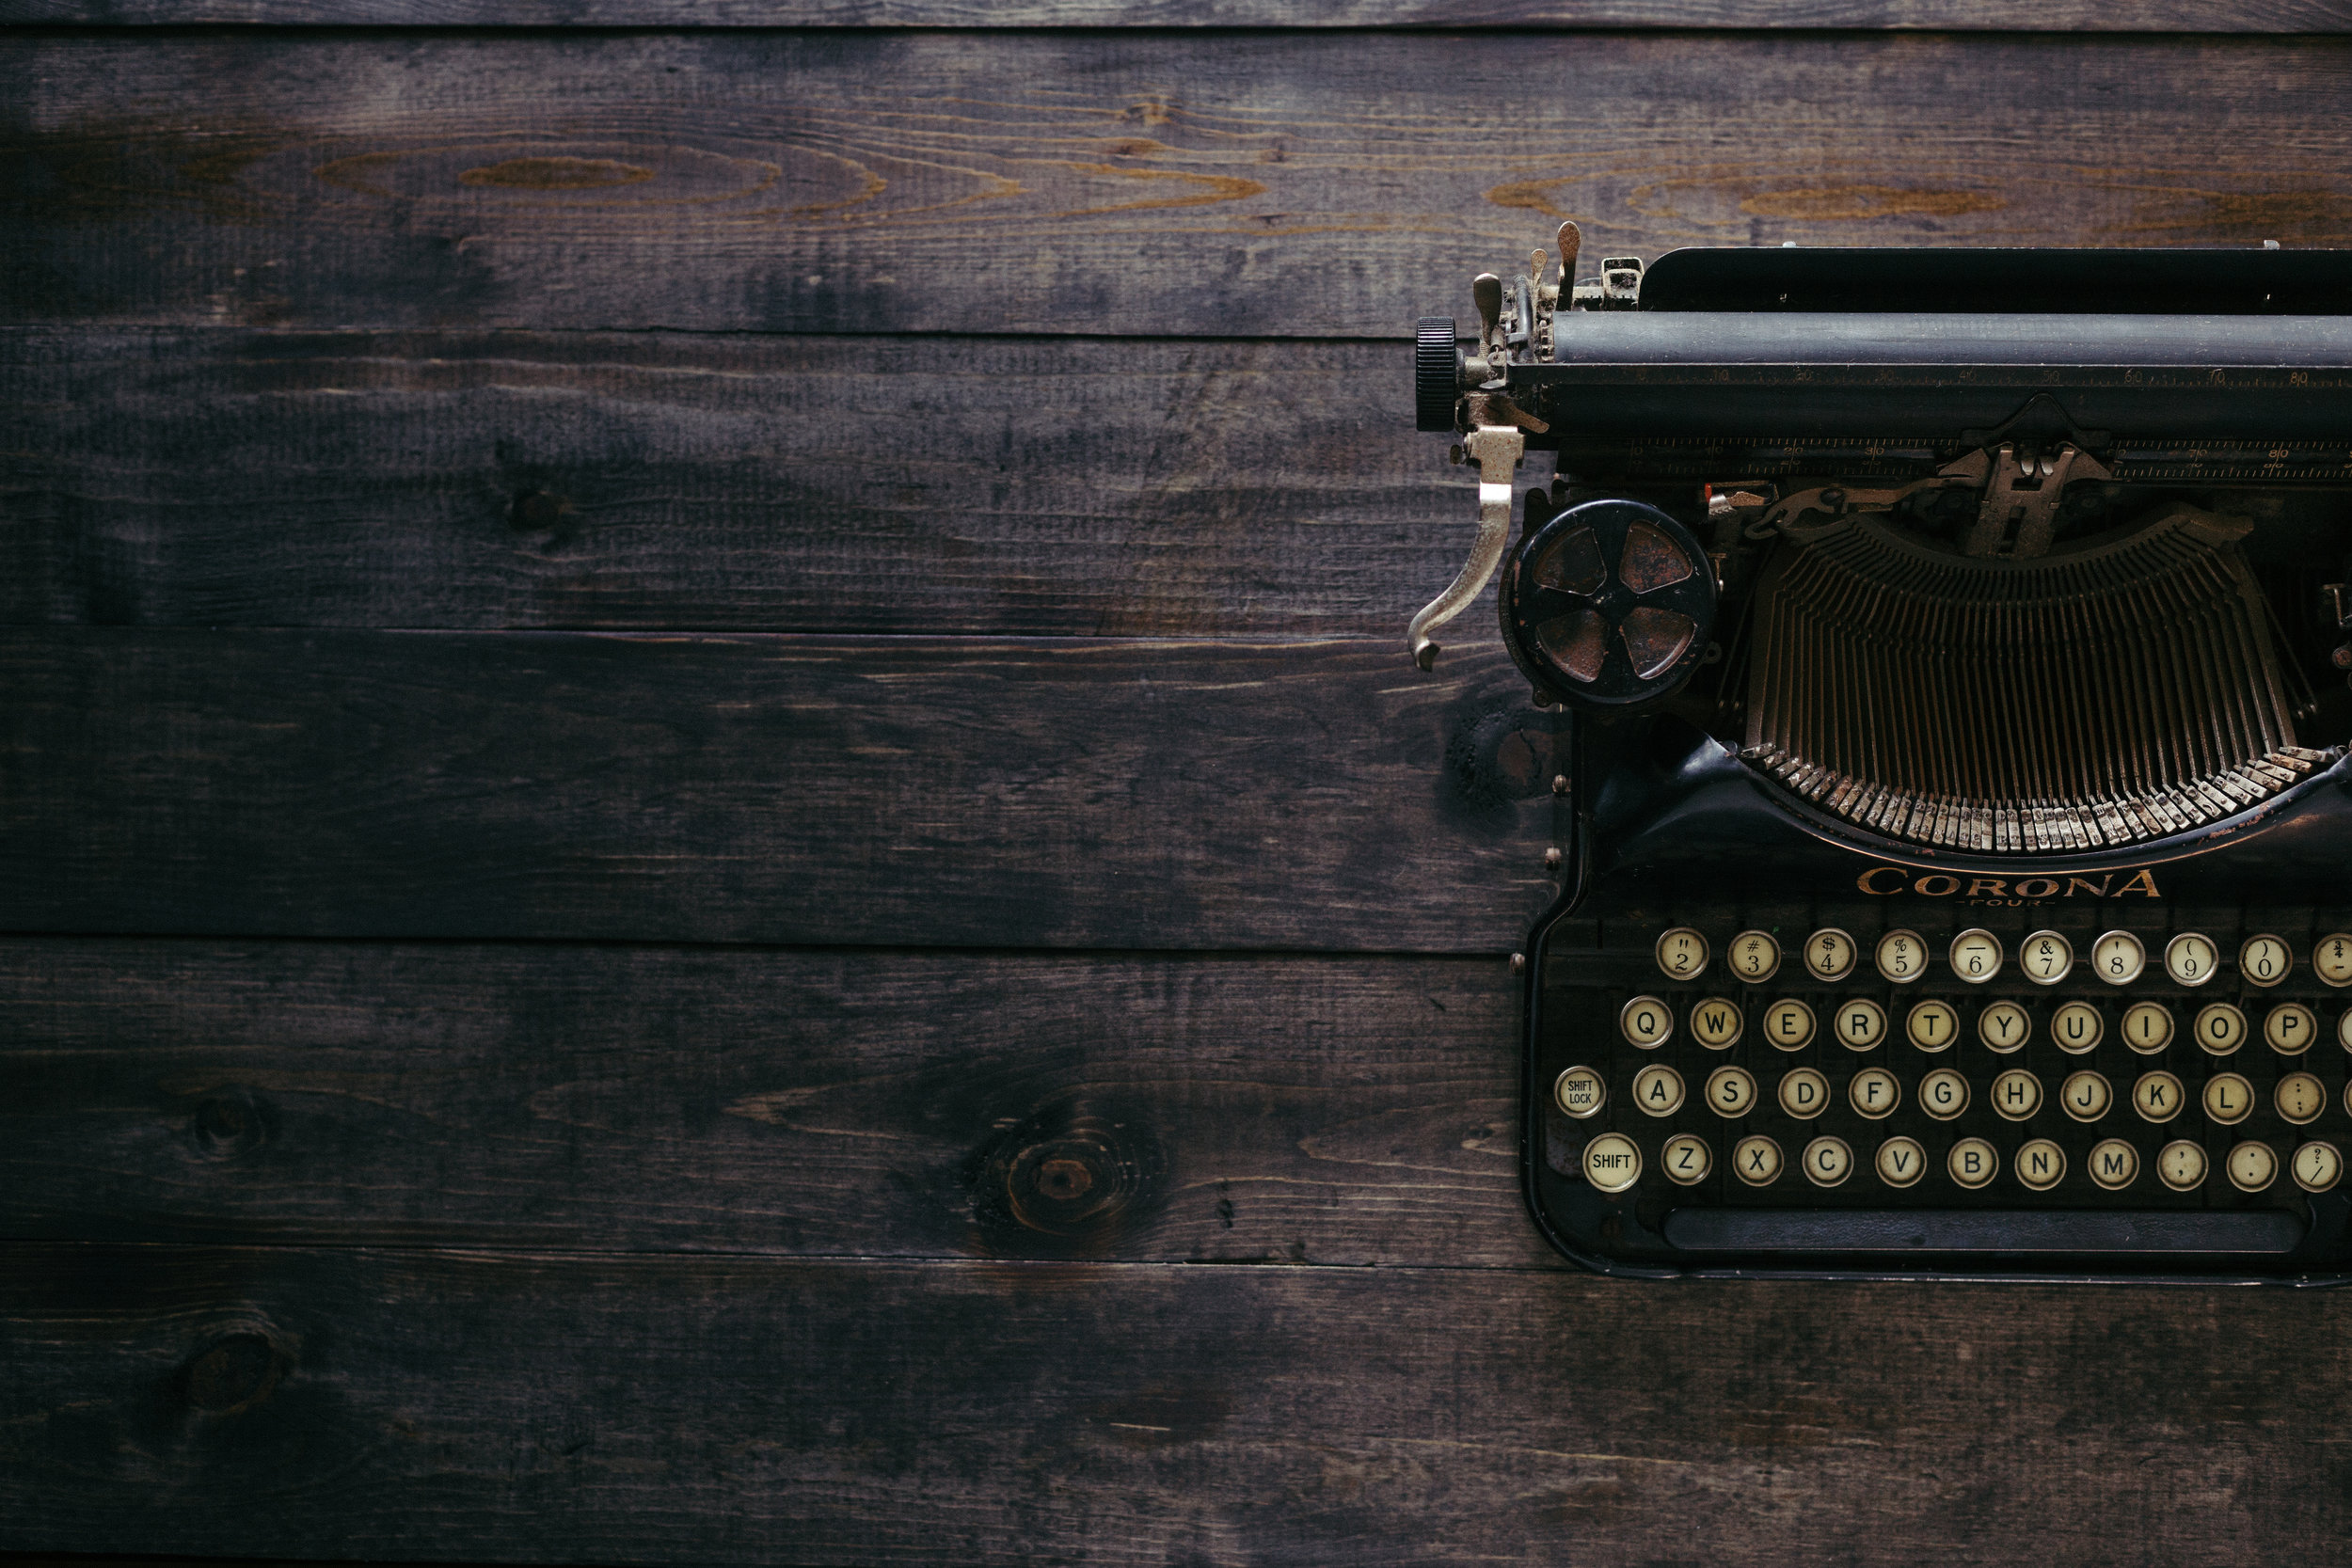 Copywriting & Editing - Whether it's a blog, press release, case study, website copy, or another type of content, make sure it's hitting your key messaging points while remaining engaging and of the highest quality.